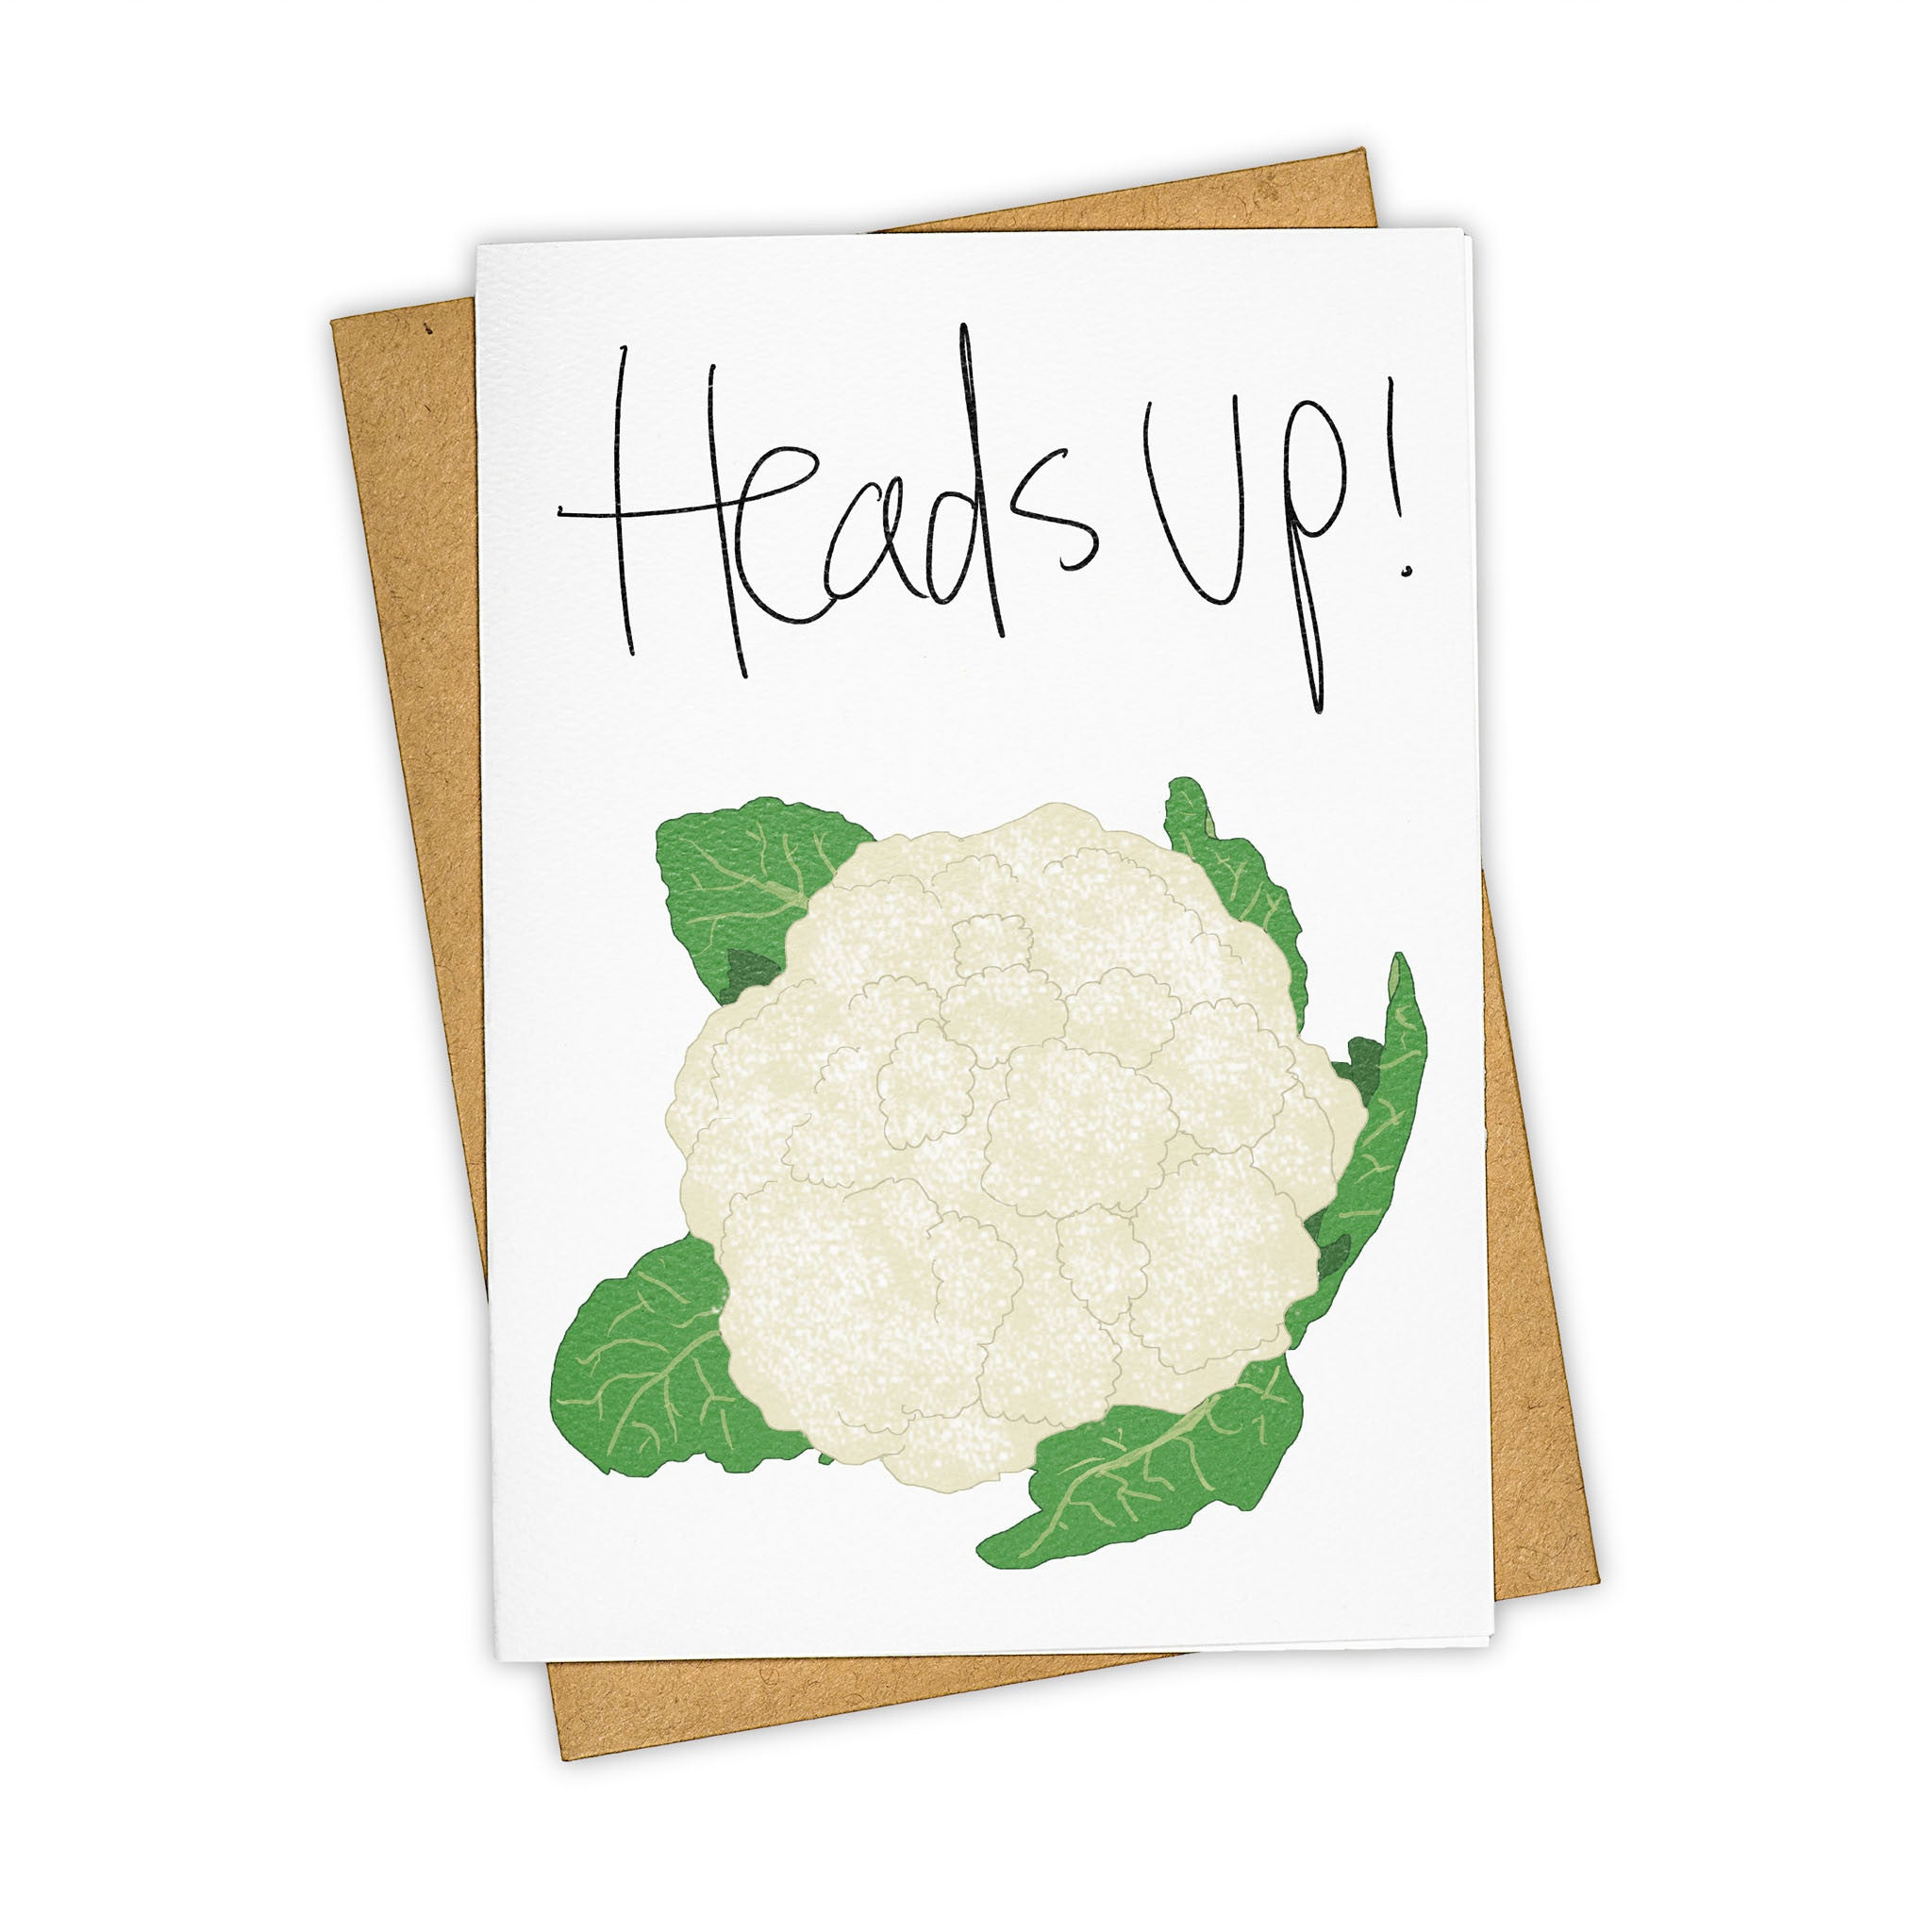 TAY HAM Cauliflower Epicurious Foodie Greeting Card